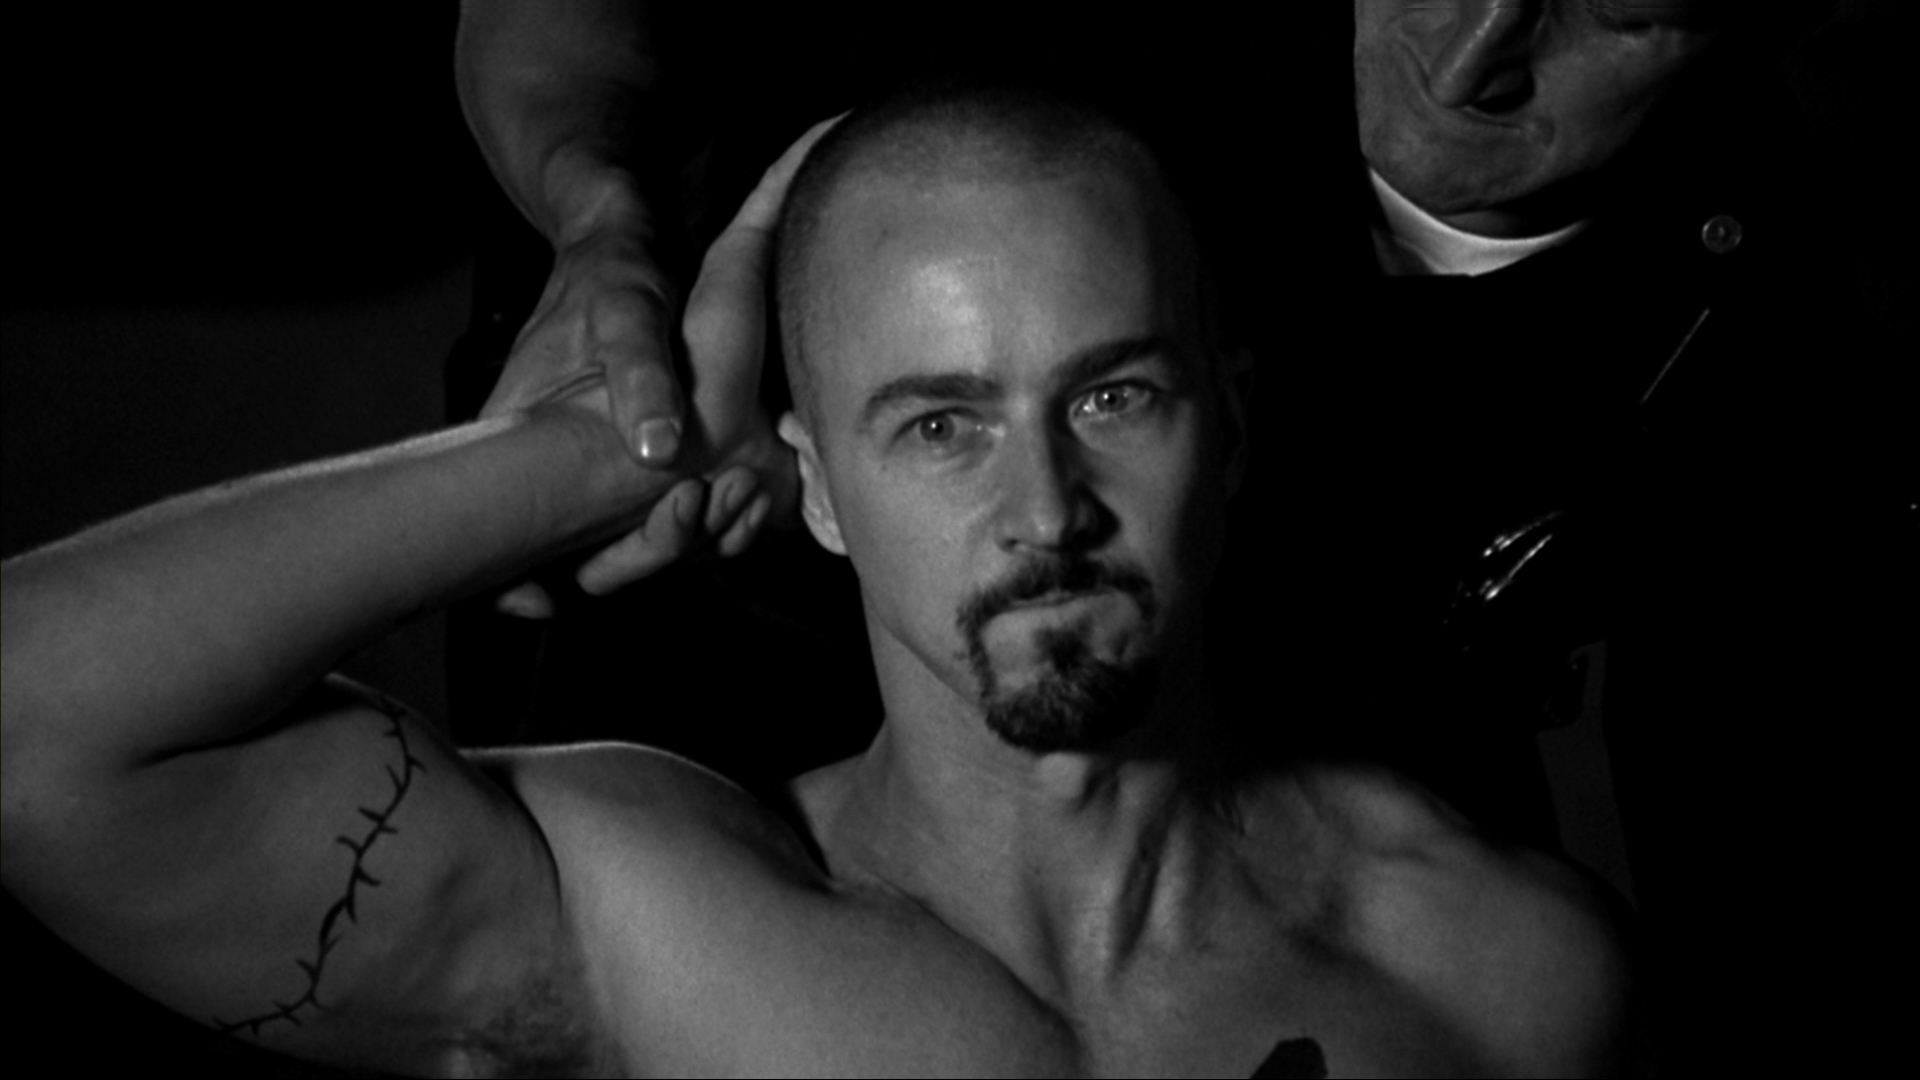 amercian history x manipulation Watch american history x (1998) full movie online on 123movieshubfilm derek vineyard is paroled after serving 3 years in prison for killing two thugs who.